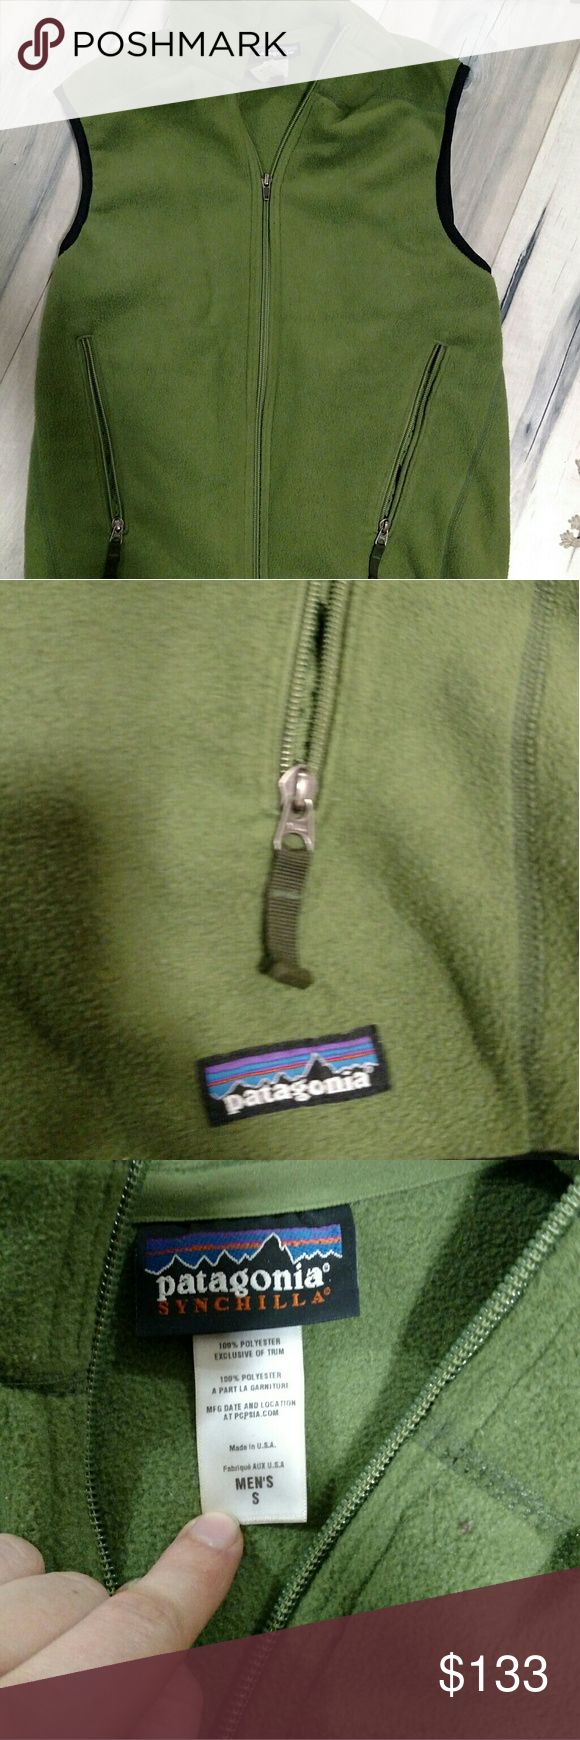 Patagonia vest Men's small but fits lady's great! Make an offer! Patagonia Jackets & Coats Vests